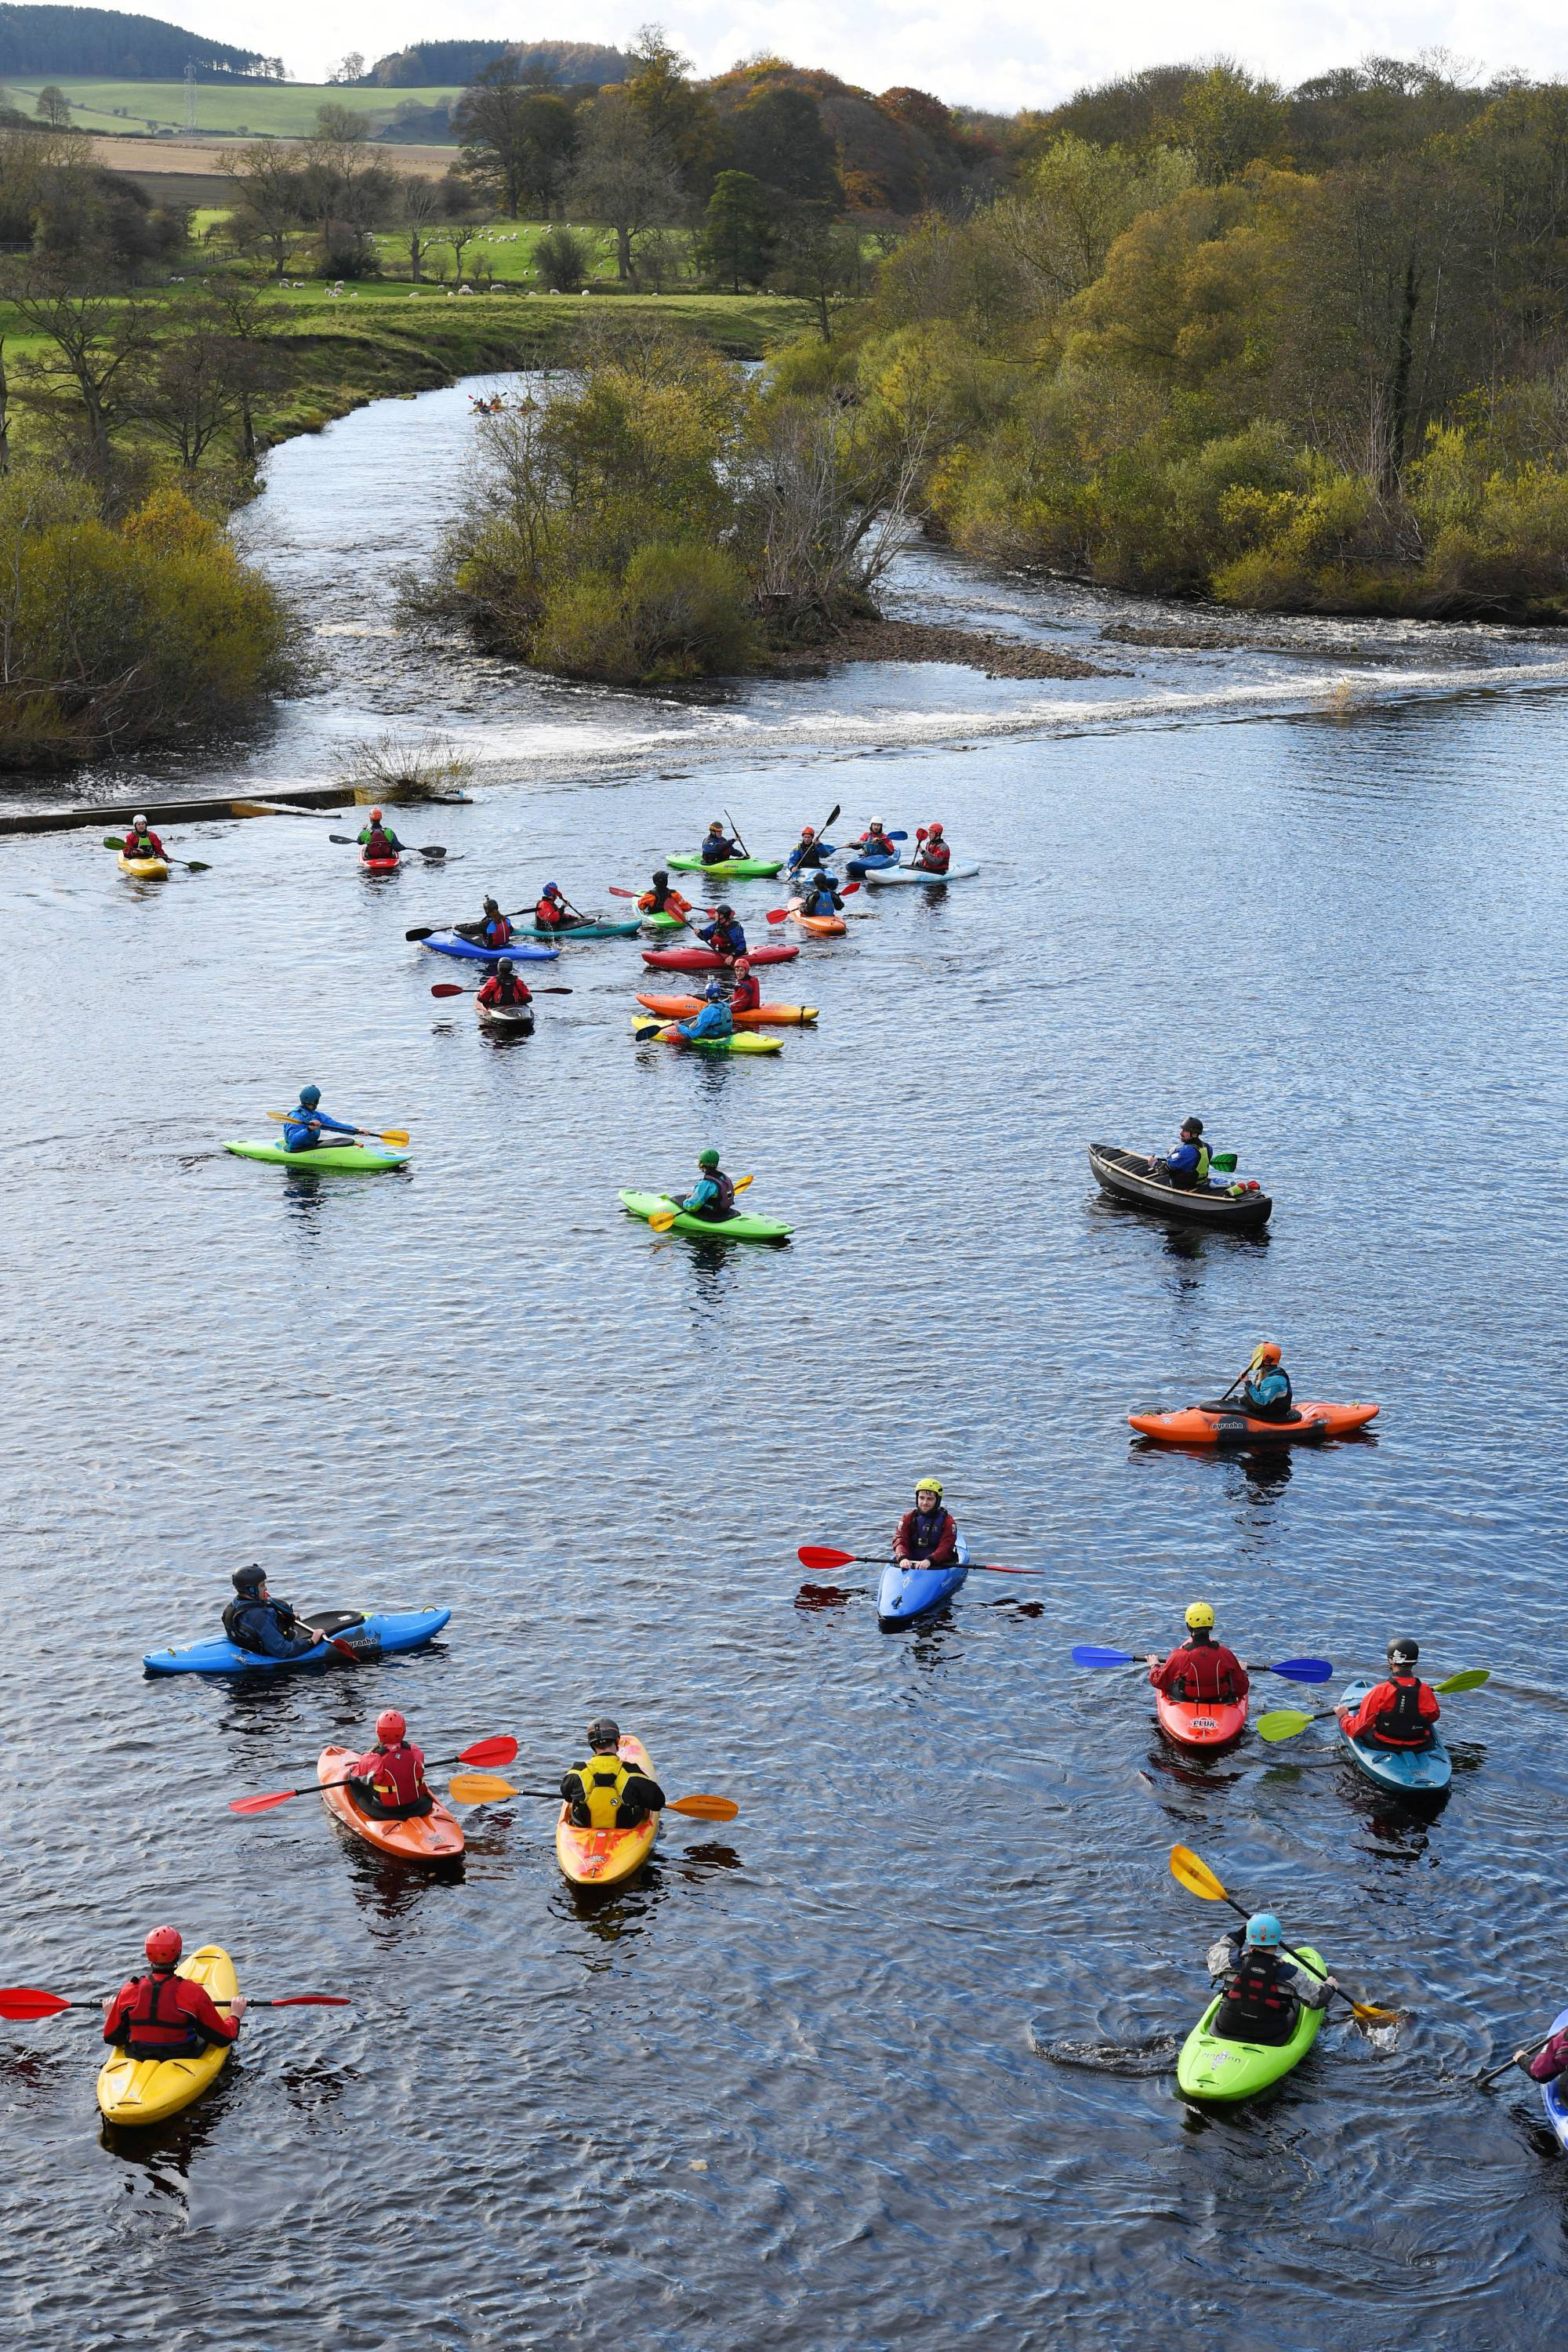 Canoeists on the North Tyne near  Chollerford Bridge, during the Tyne Descent Race as part of last year's Tyne Tour.